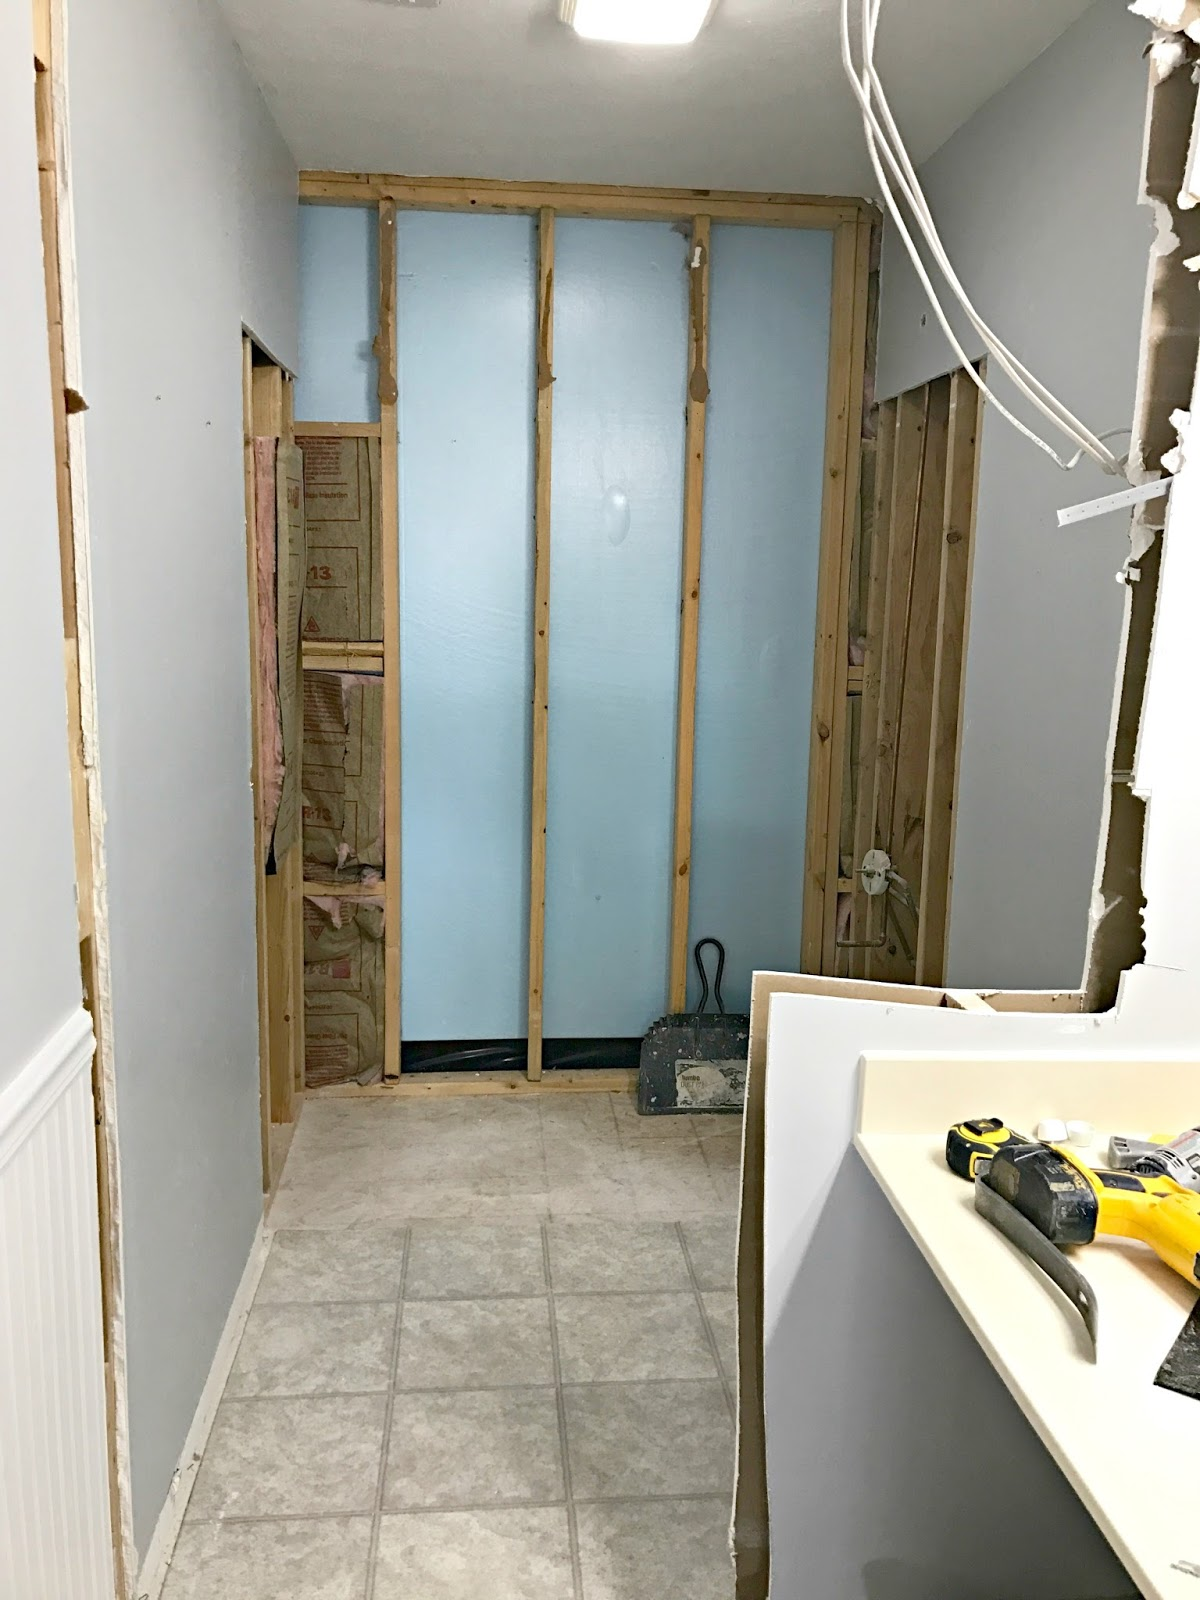 The new bathroom: resources and project links from Thrifty Decor Chick